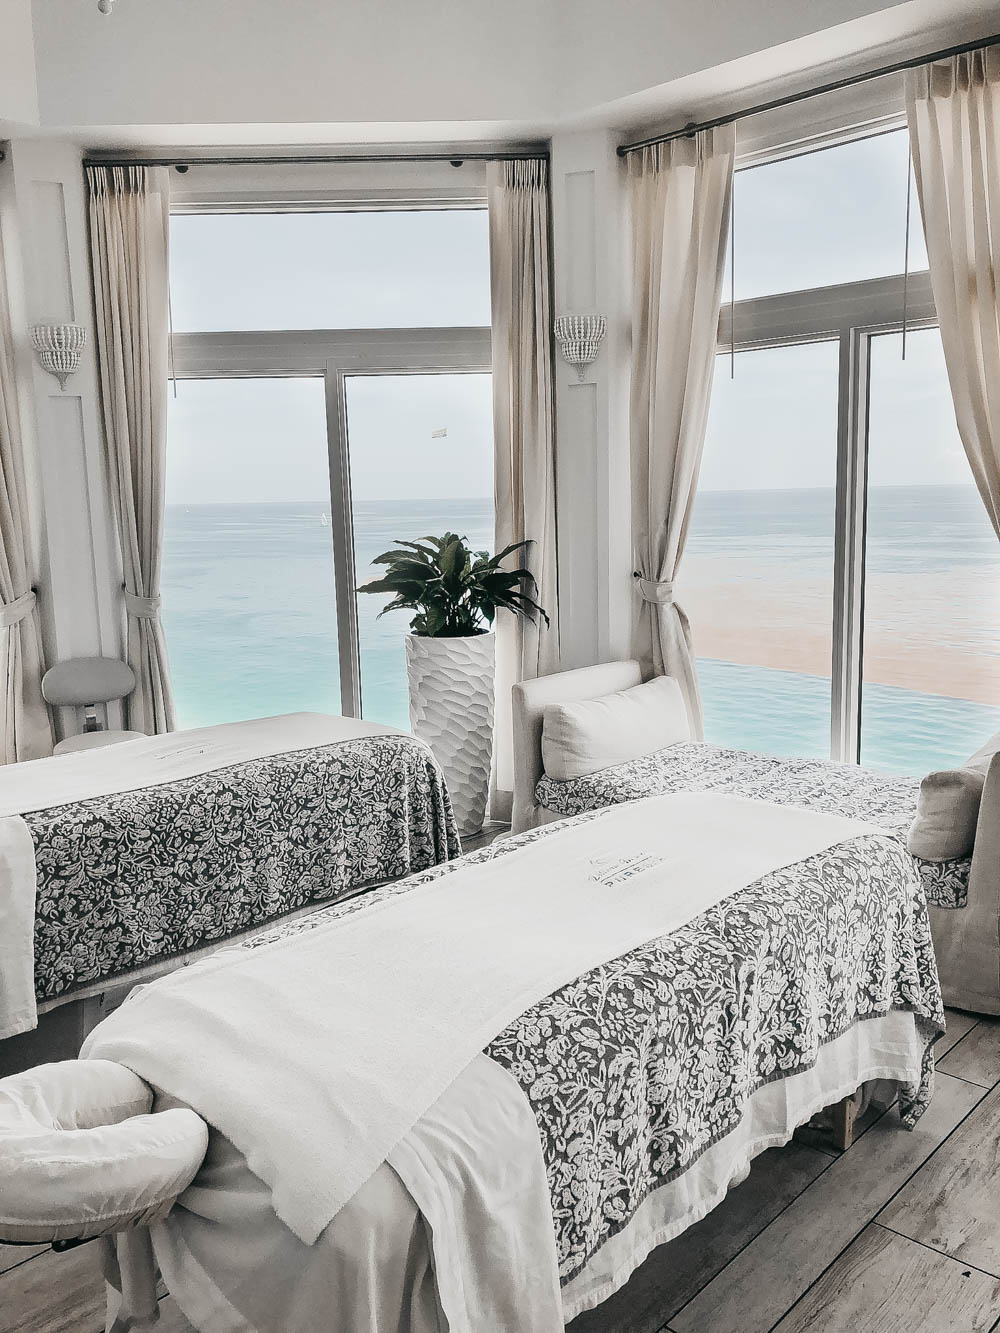 Massage room with views of ocean beach